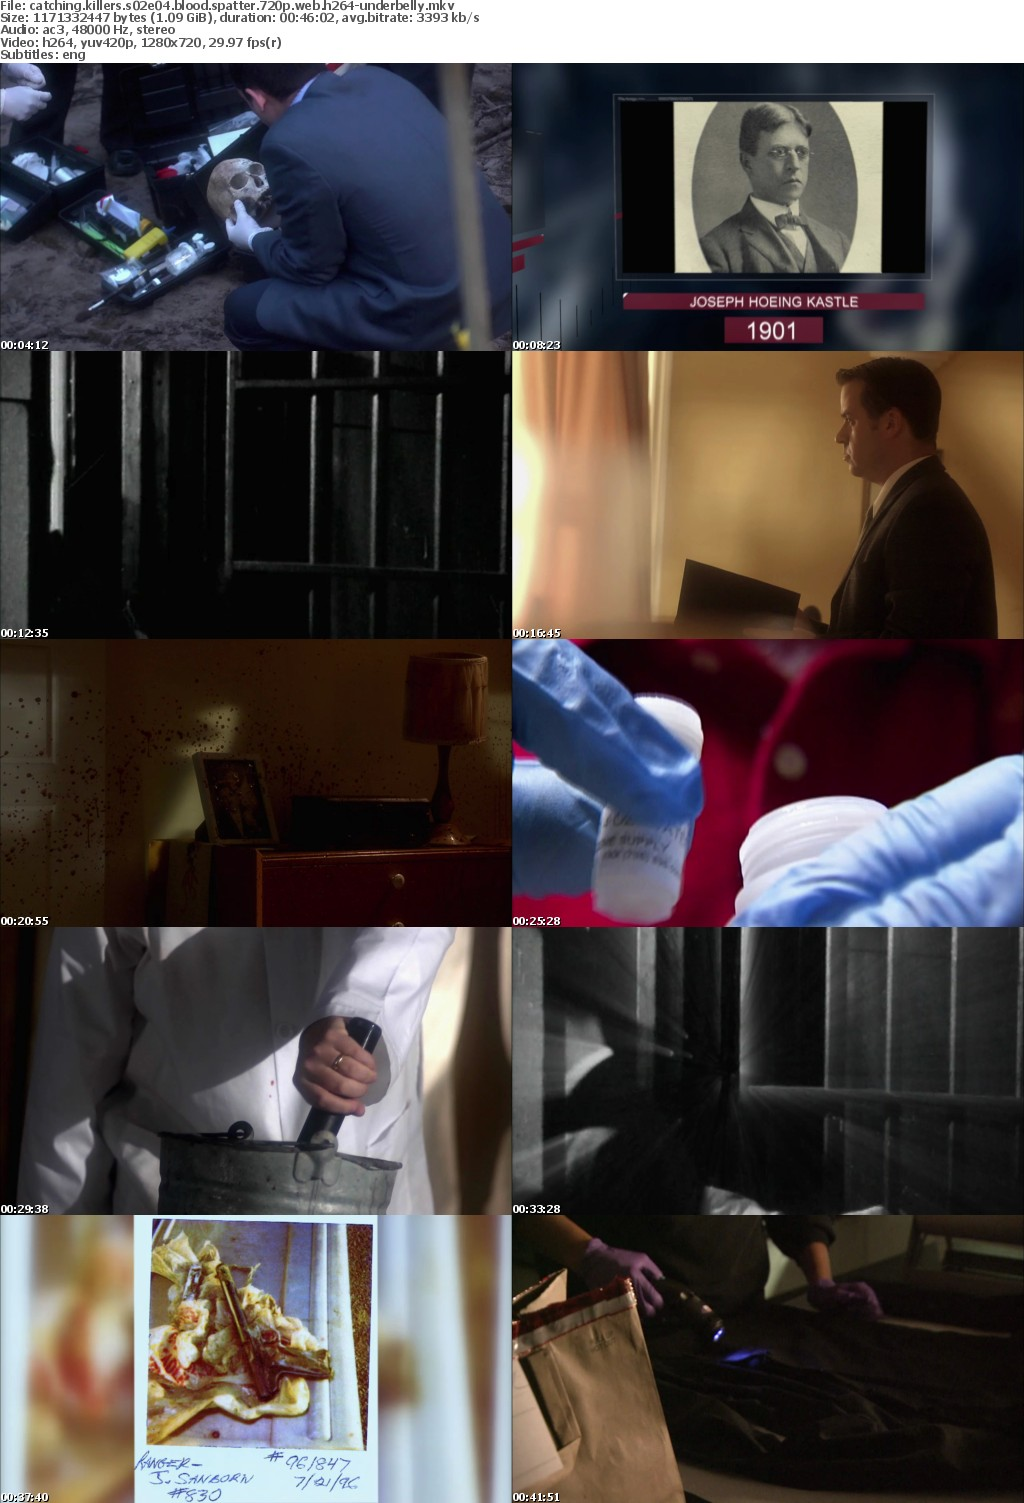 catching killers s02e04 blood spatter 720p web h264-underbelly